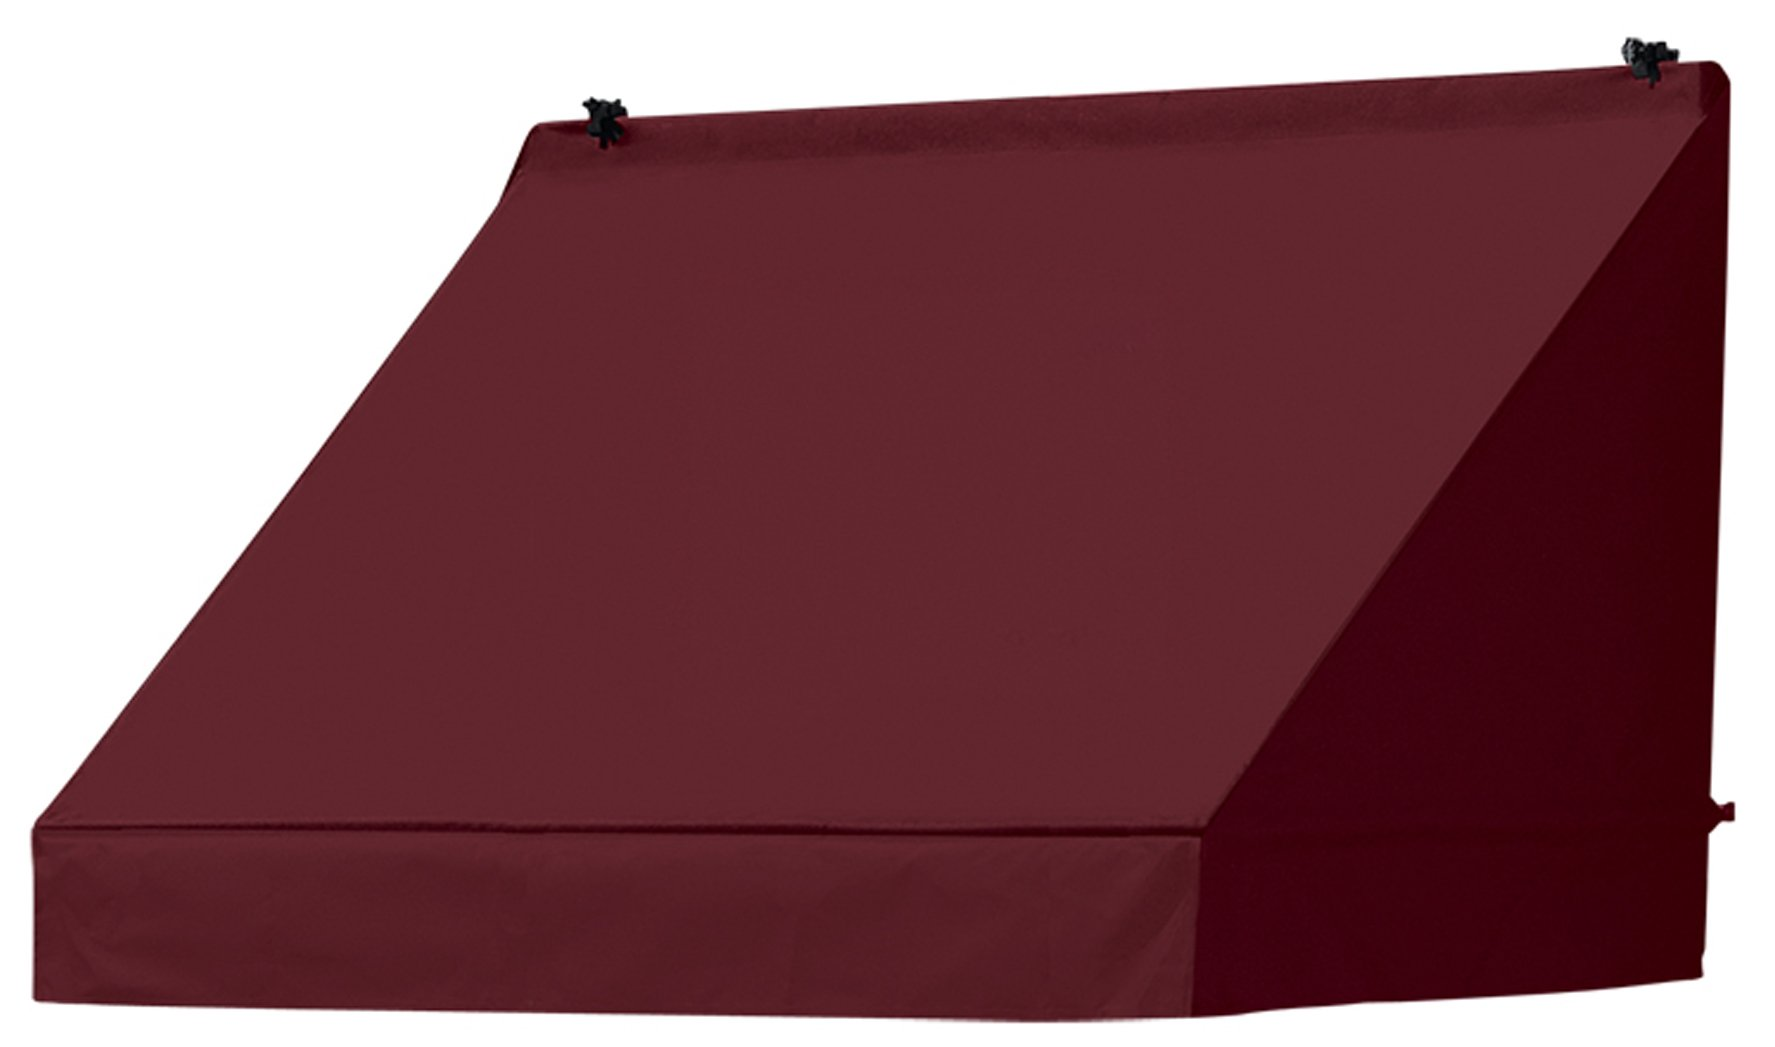 Awnings in a Box 3020736 Window Awning, 4', Burgundy by Awnings in a Box